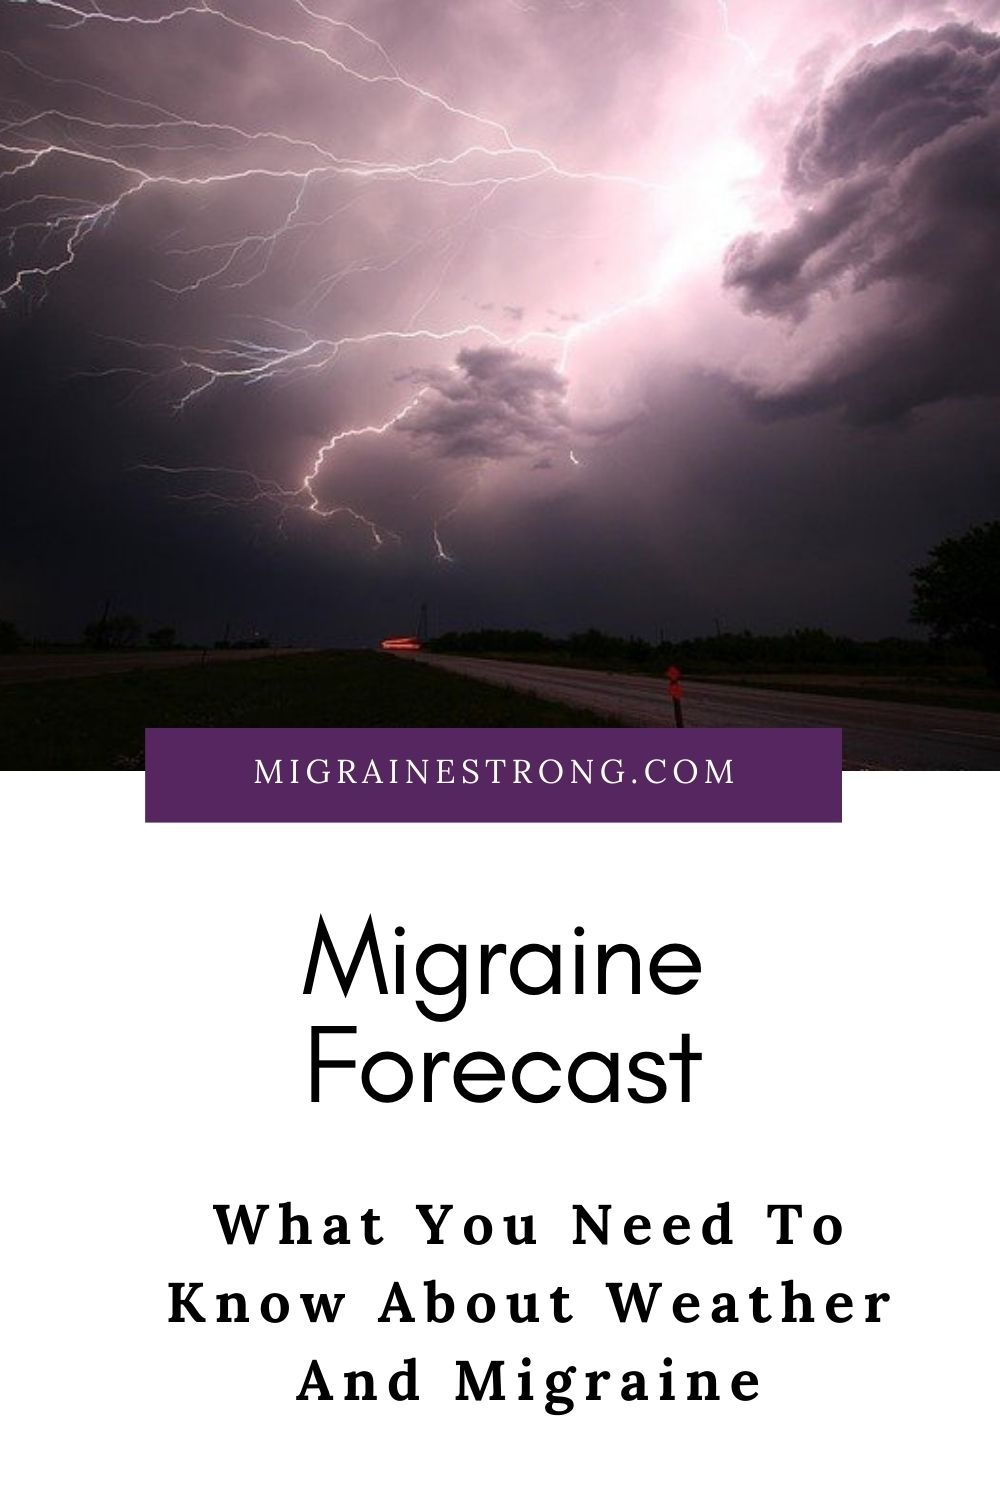 Migraine Forecast - What You Need To Know About Weather